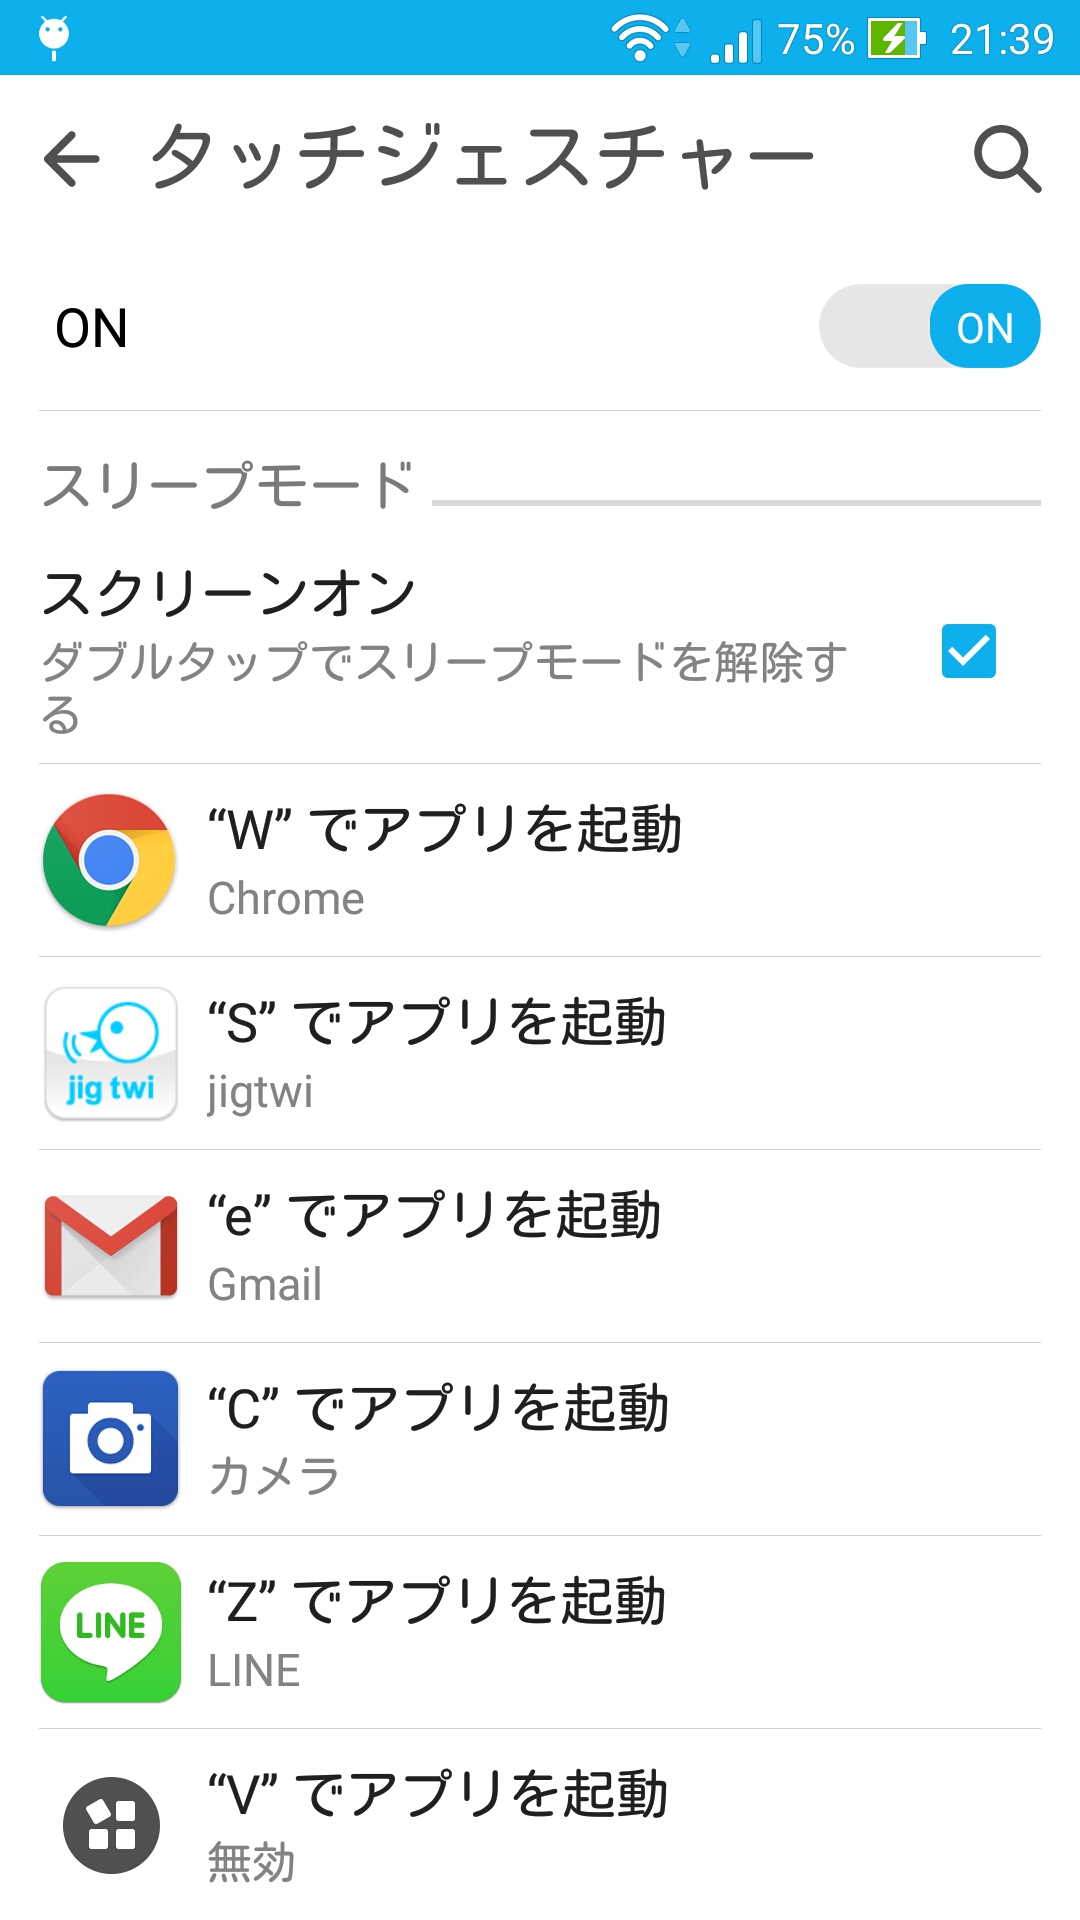 Screenshot_2015-06-21-21-39-05.jpg